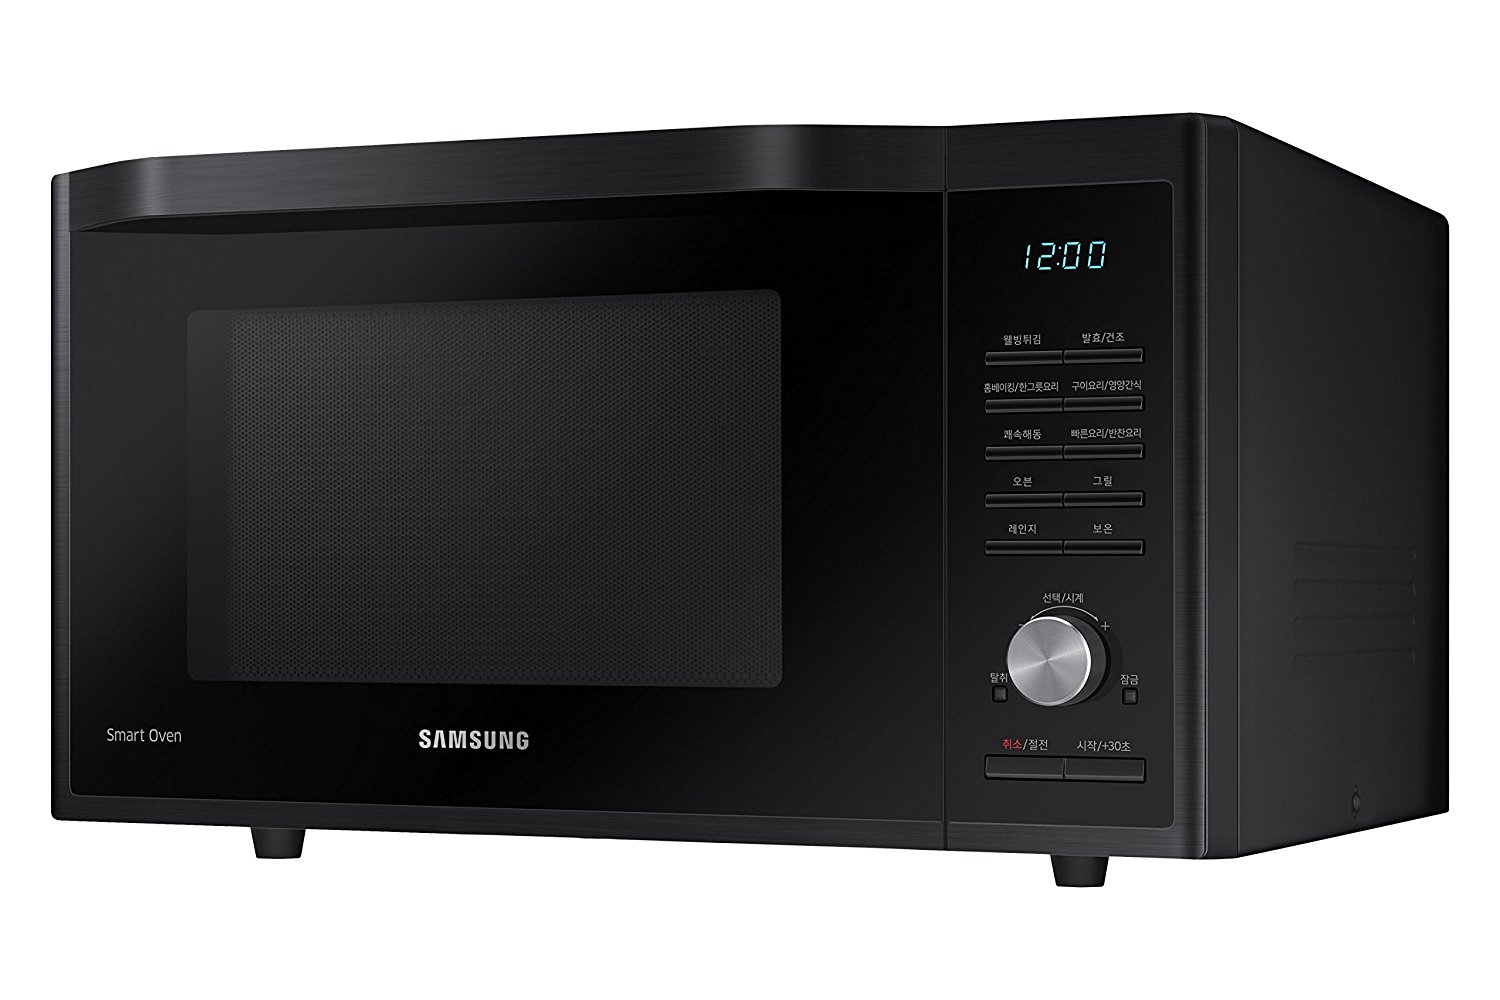 32 Liters convection samsung microwave